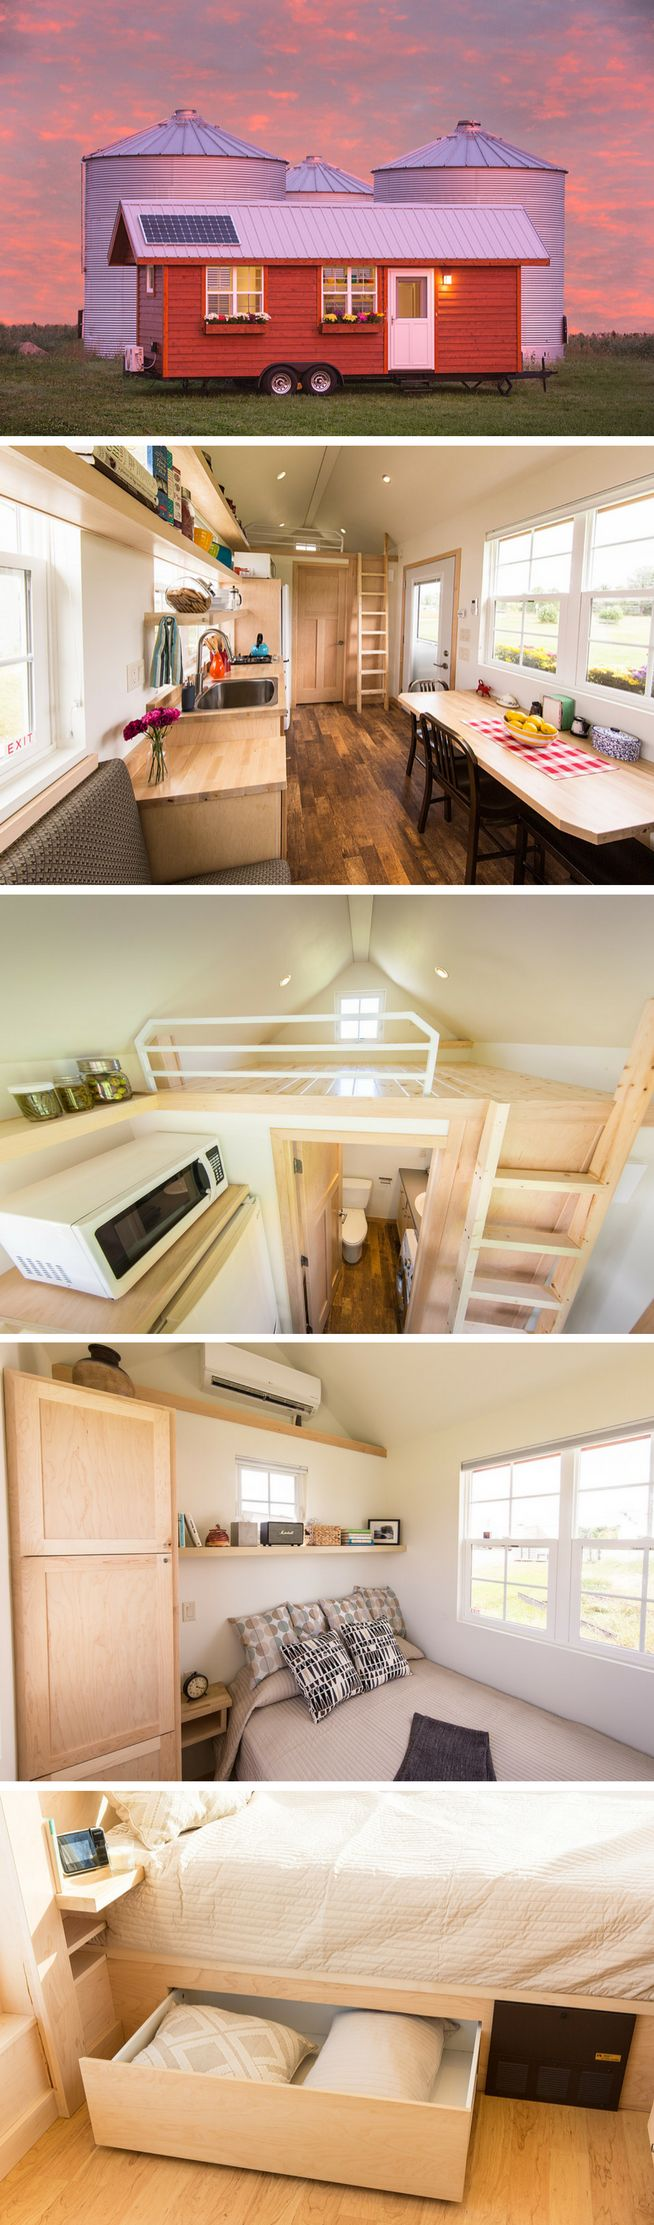 1006 best tiny and small houses 3 images on Pinterest | Tiny house On Wheels Tiny House Designs B E A on